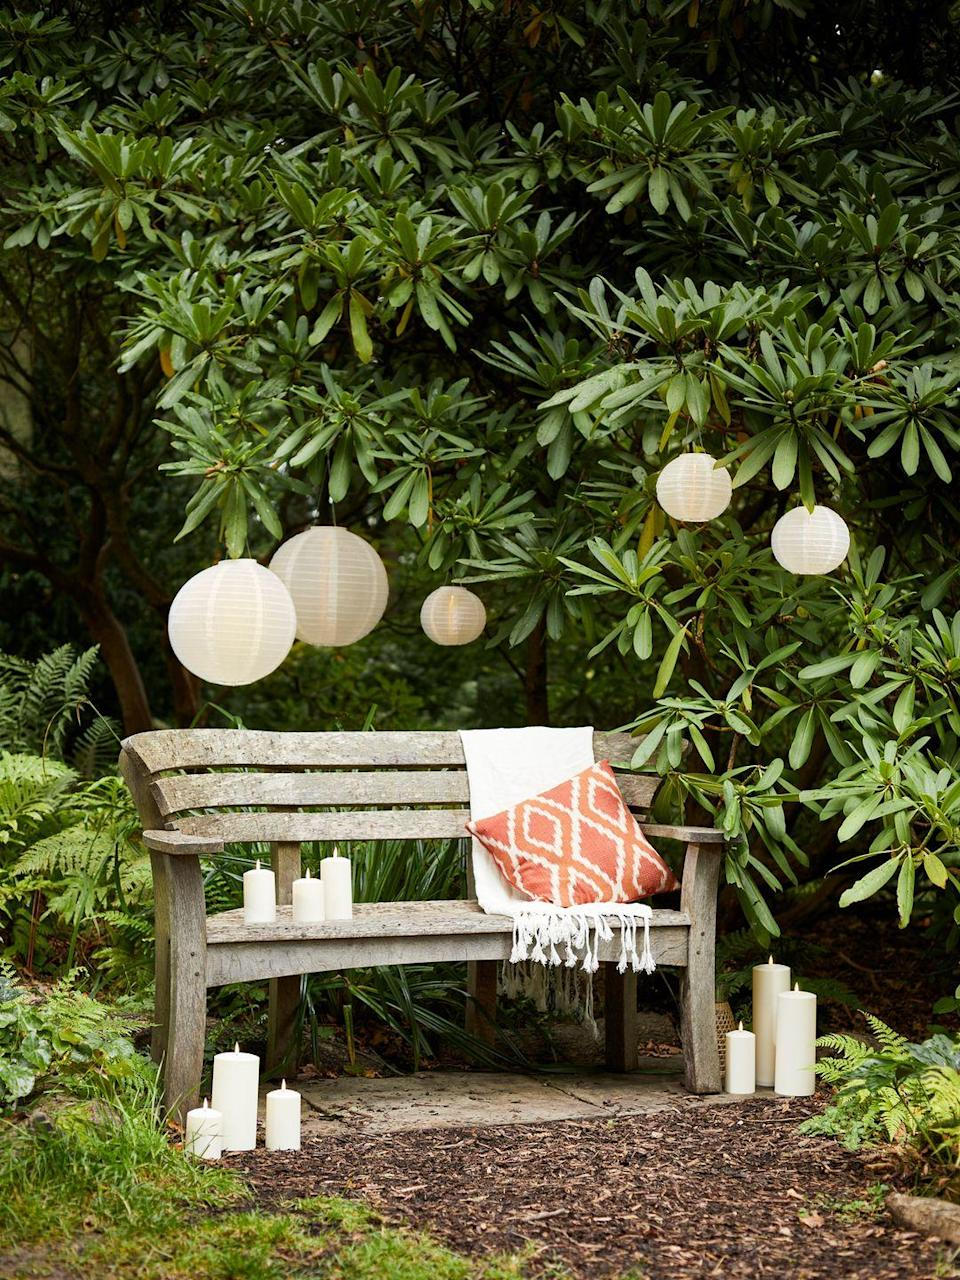 """<p>Have you considered showering your space with <a href=""""https://www.housebeautiful.com/uk/garden/g32577683/garden-lanterns/"""" rel=""""nofollow noopener"""" target=""""_blank"""" data-ylk=""""slk:lanterns"""" class=""""link rapid-noclick-resp"""">lanterns</a>? As well as making your garden glow, they add atmosphere and extend the garden into the sunset. Some are solar powered, while other LED options will need to be situated near a socket. You'll have an Insta-worthy space in no time... </p><p>Pictured: 3 Lucena Cream Tassel Solar Lanterns, £39.99, Lights4Fun</p><p><a class=""""link rapid-noclick-resp"""" href=""""https://www.housebeautiful.com/uk/garden/g32577683/garden-lanterns/"""" rel=""""nofollow noopener"""" target=""""_blank"""" data-ylk=""""slk:READ MORE: THE BEST GARDEN LANTERNS"""">READ MORE: THE BEST GARDEN LANTERNS</a></p>"""